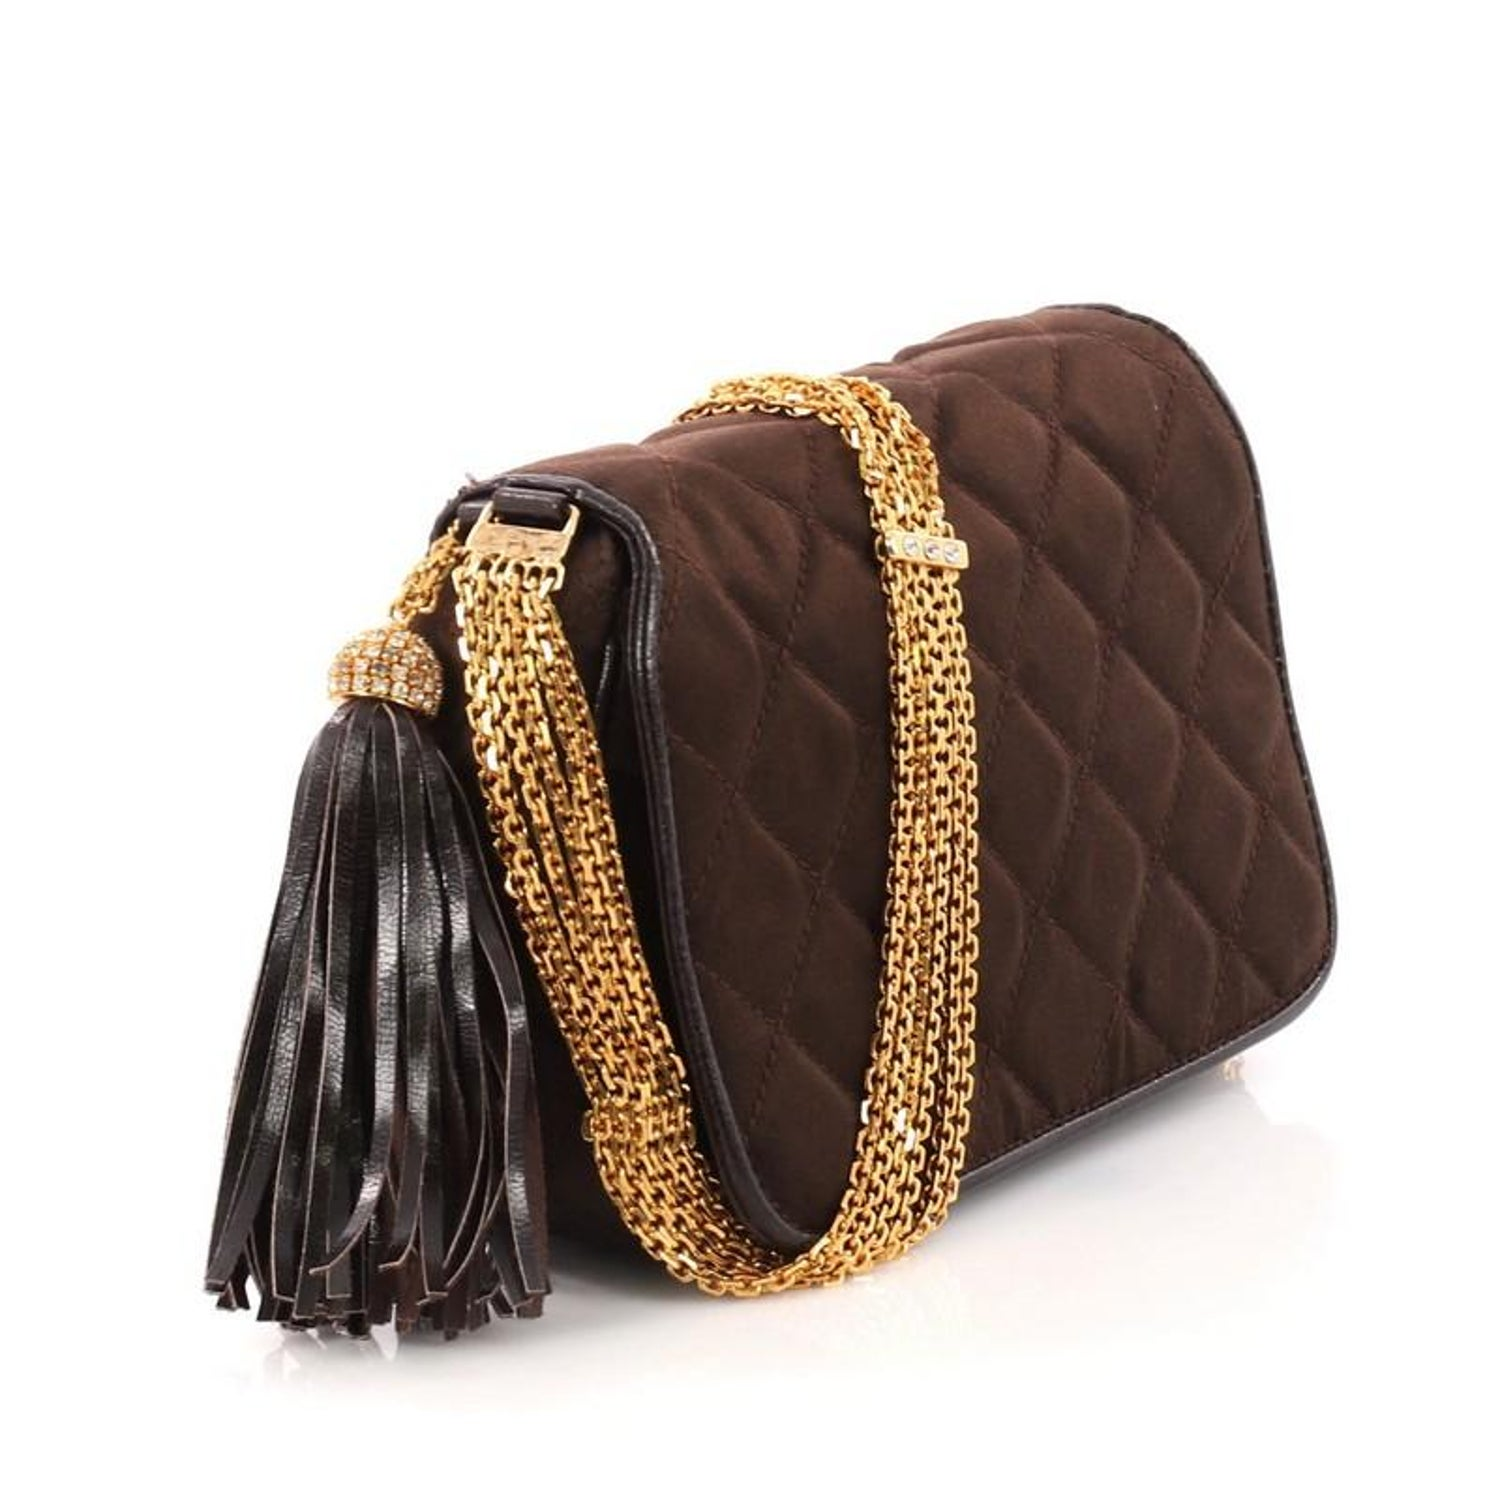 111729fe8462 Chanel Vintage Tassel Flap Bag Quilted Satin Small at 1stdibs